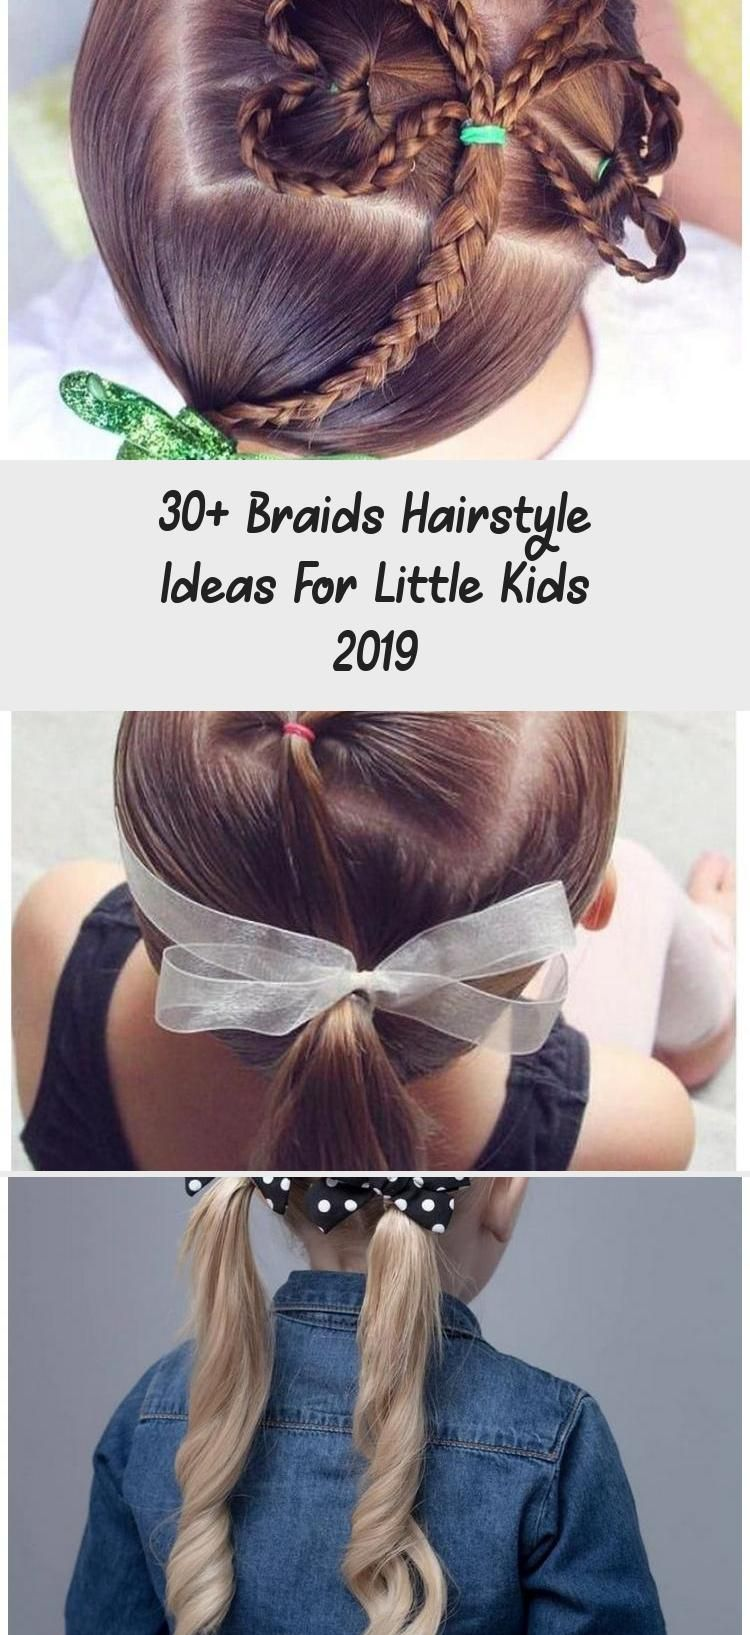 Finding Braids Hairstyle Ideas For Little Kids Online Braids Hairstyle Ideas For Little Kids Explained The In 2020 Hair Styles Braided Hairstyles Braids For Short Hair